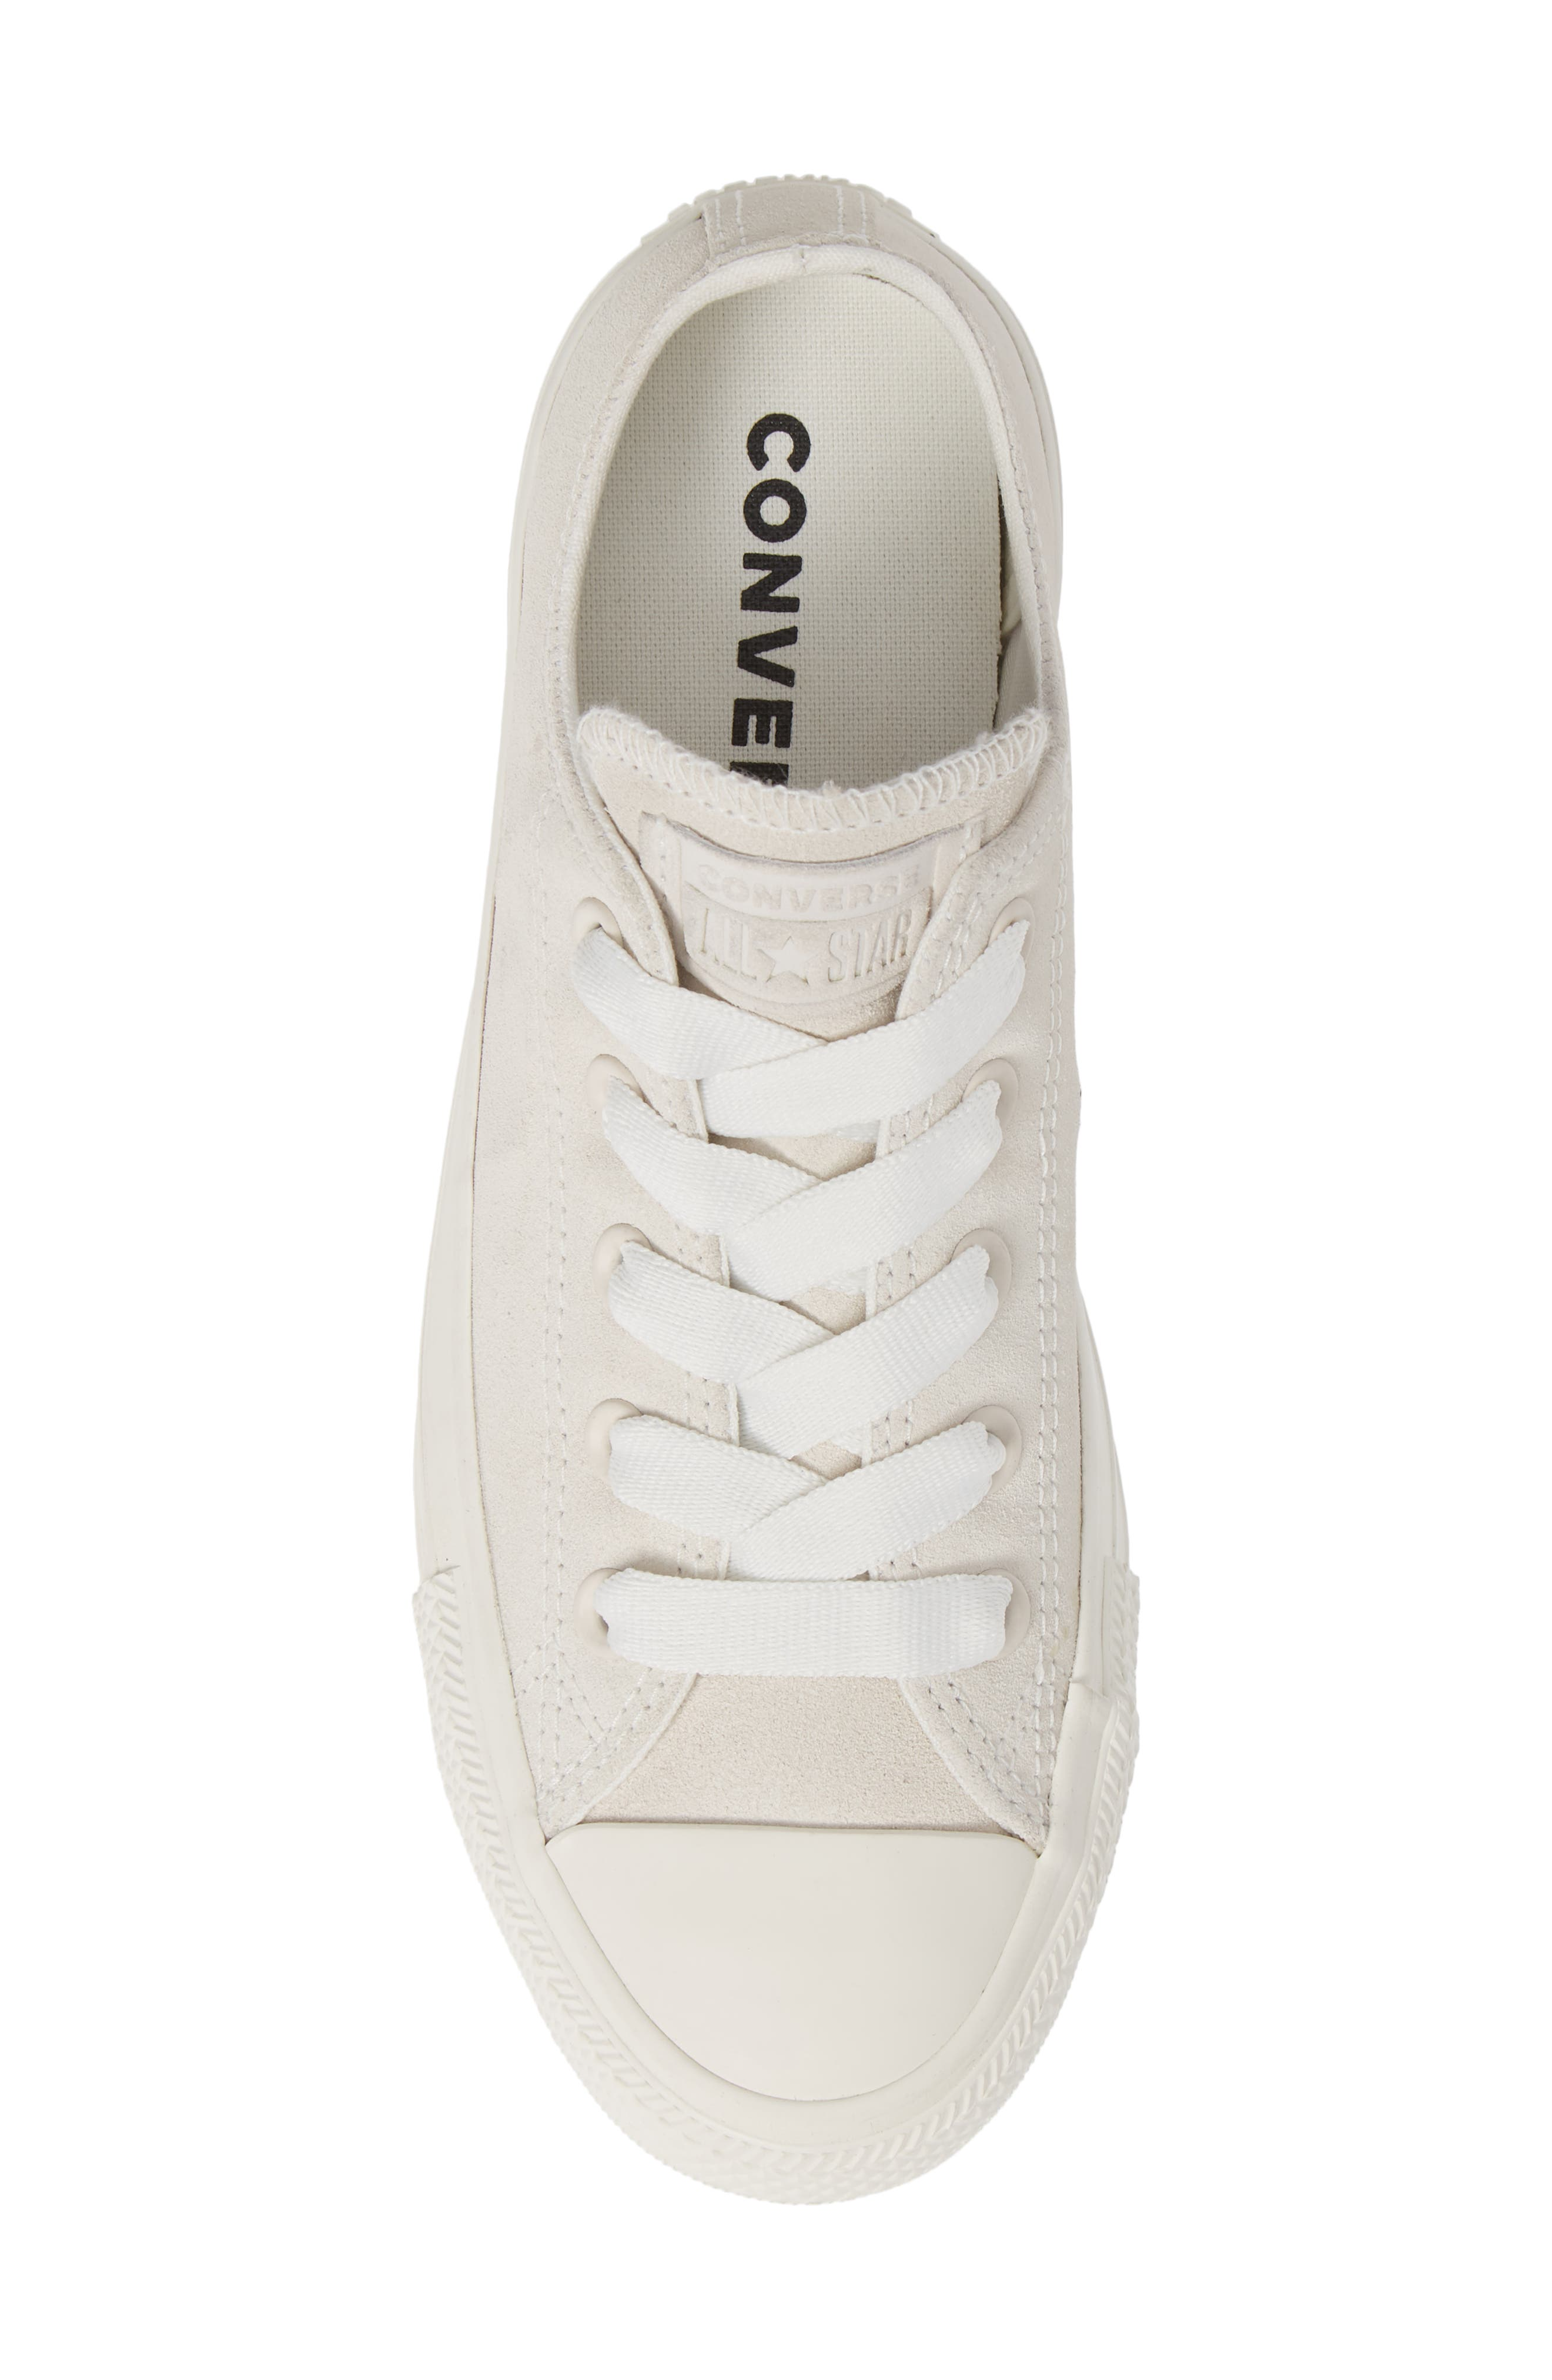 CONVERSE, Chuck Taylor<sup>®</sup> All Star<sup>®</sup> Ox Sneaker, Alternate thumbnail 5, color, VINTAGE WHITE SUEDE